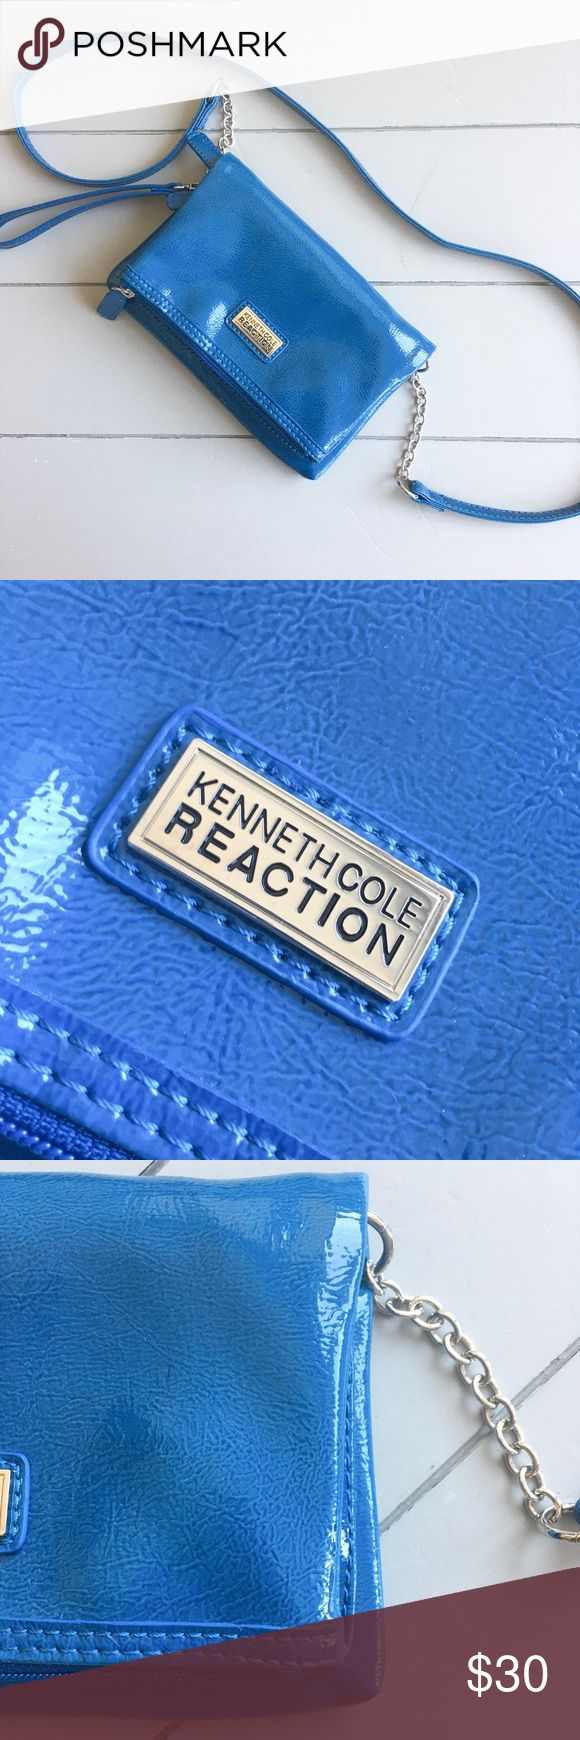 Kenneth Cole Reaction Blue small cross-body bag Royal blue glossy croc foldover bag with chain and leather strap that comes off so it can be used as a wristlet or clutch. Like new, with a tiny defect, the back of the bag has some very very slight discoloration, looks like water spots, but it won't come off, see pictures. Doesn't affect the look at all, just want to disclose everything. Other than that, this bag is in excellent like-new condition with no other signs of wear! All reasonable…